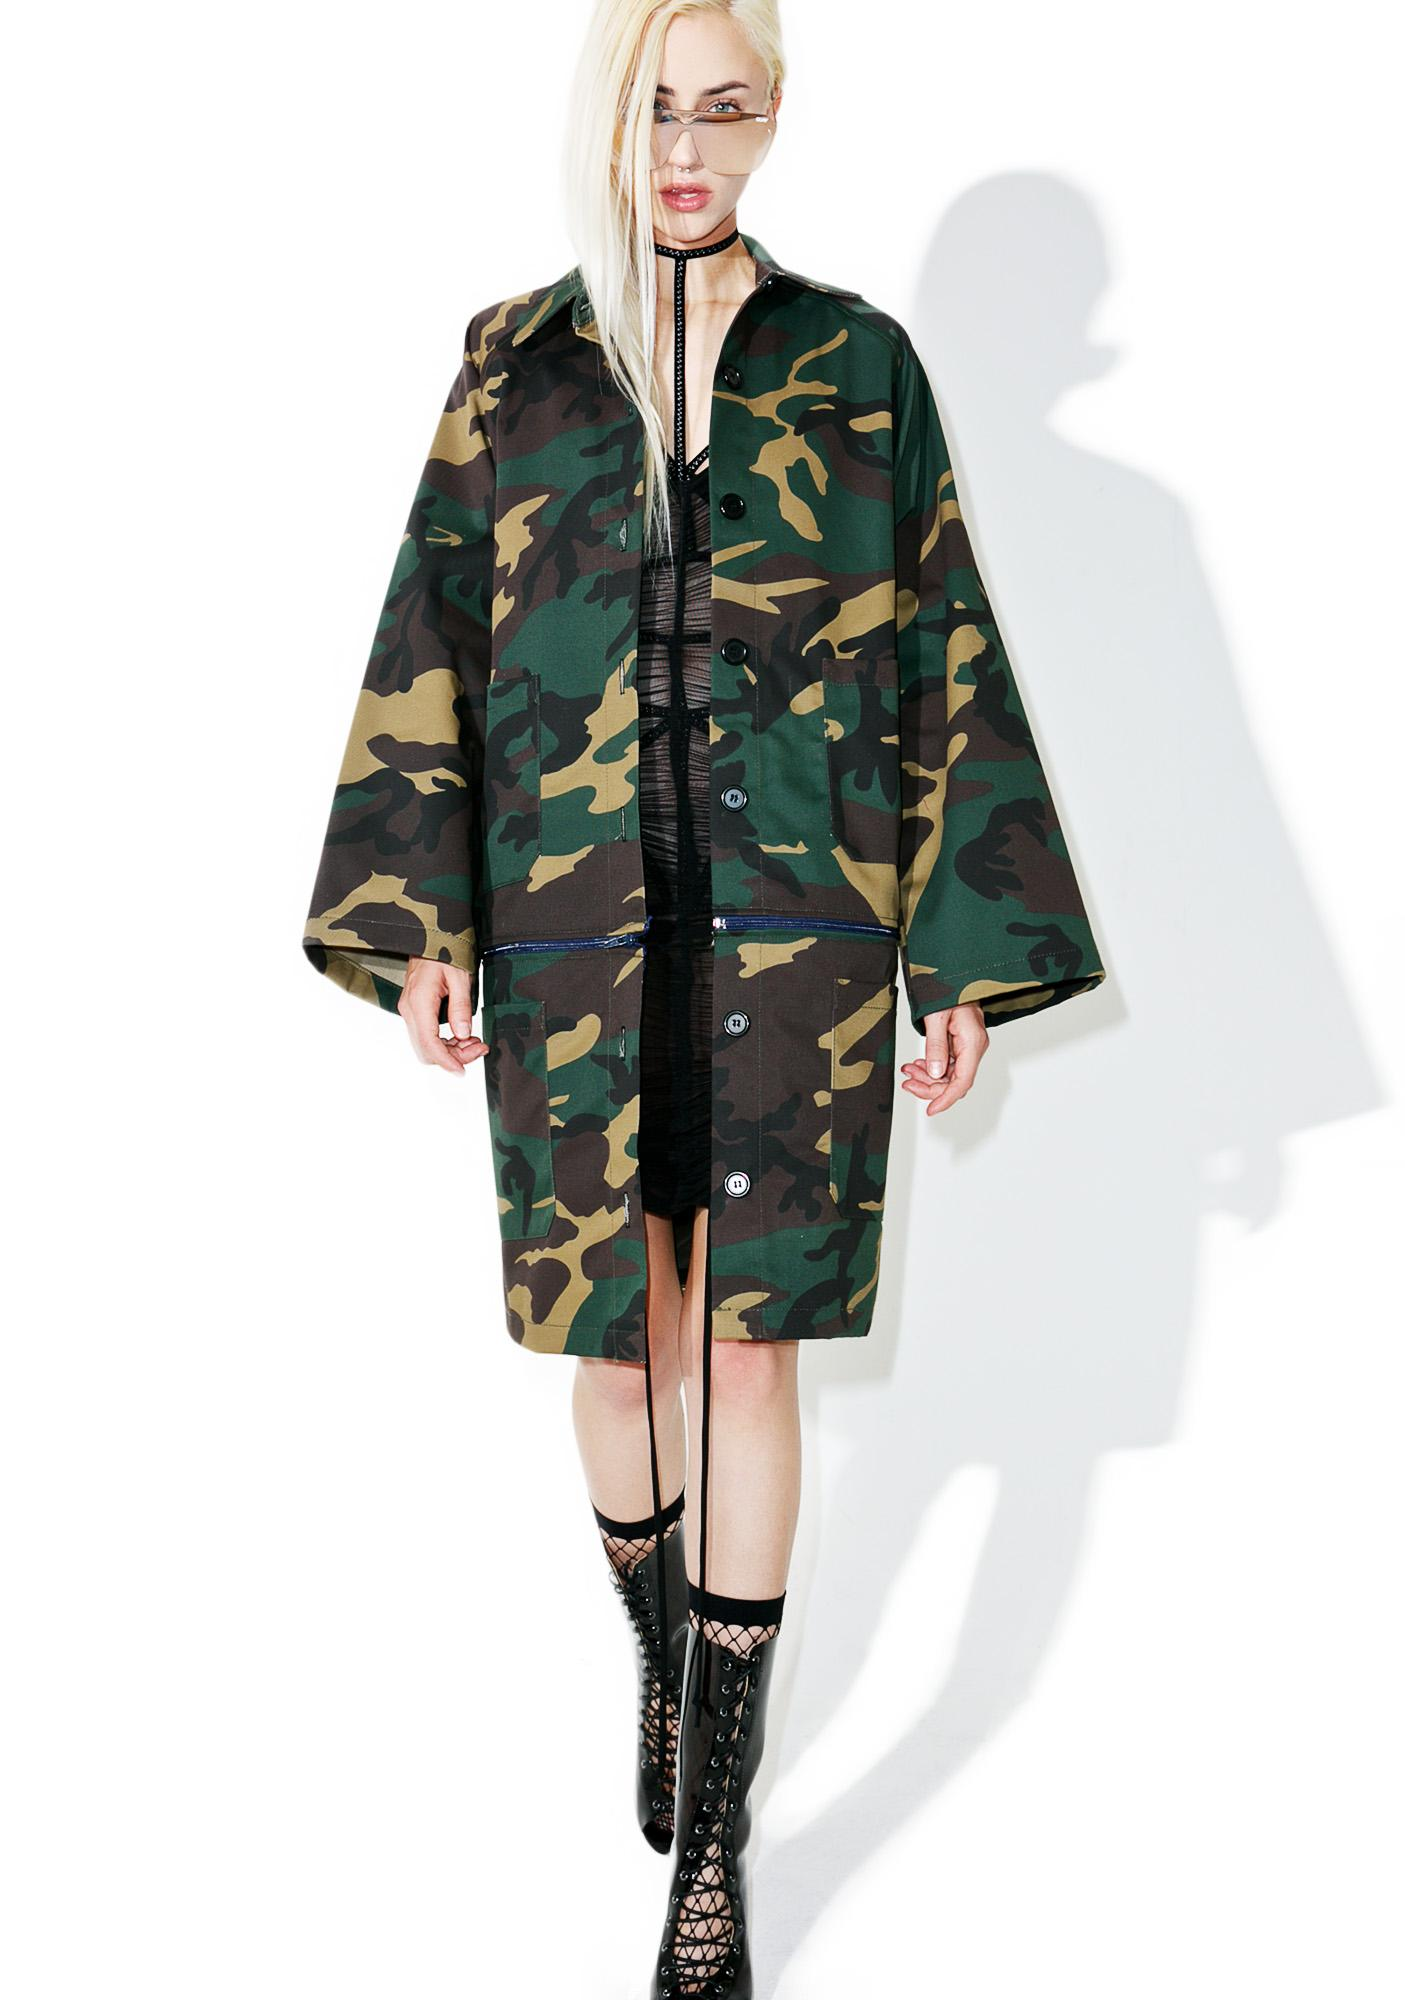 HLZBLZ On 2 U Long Camo Jacket